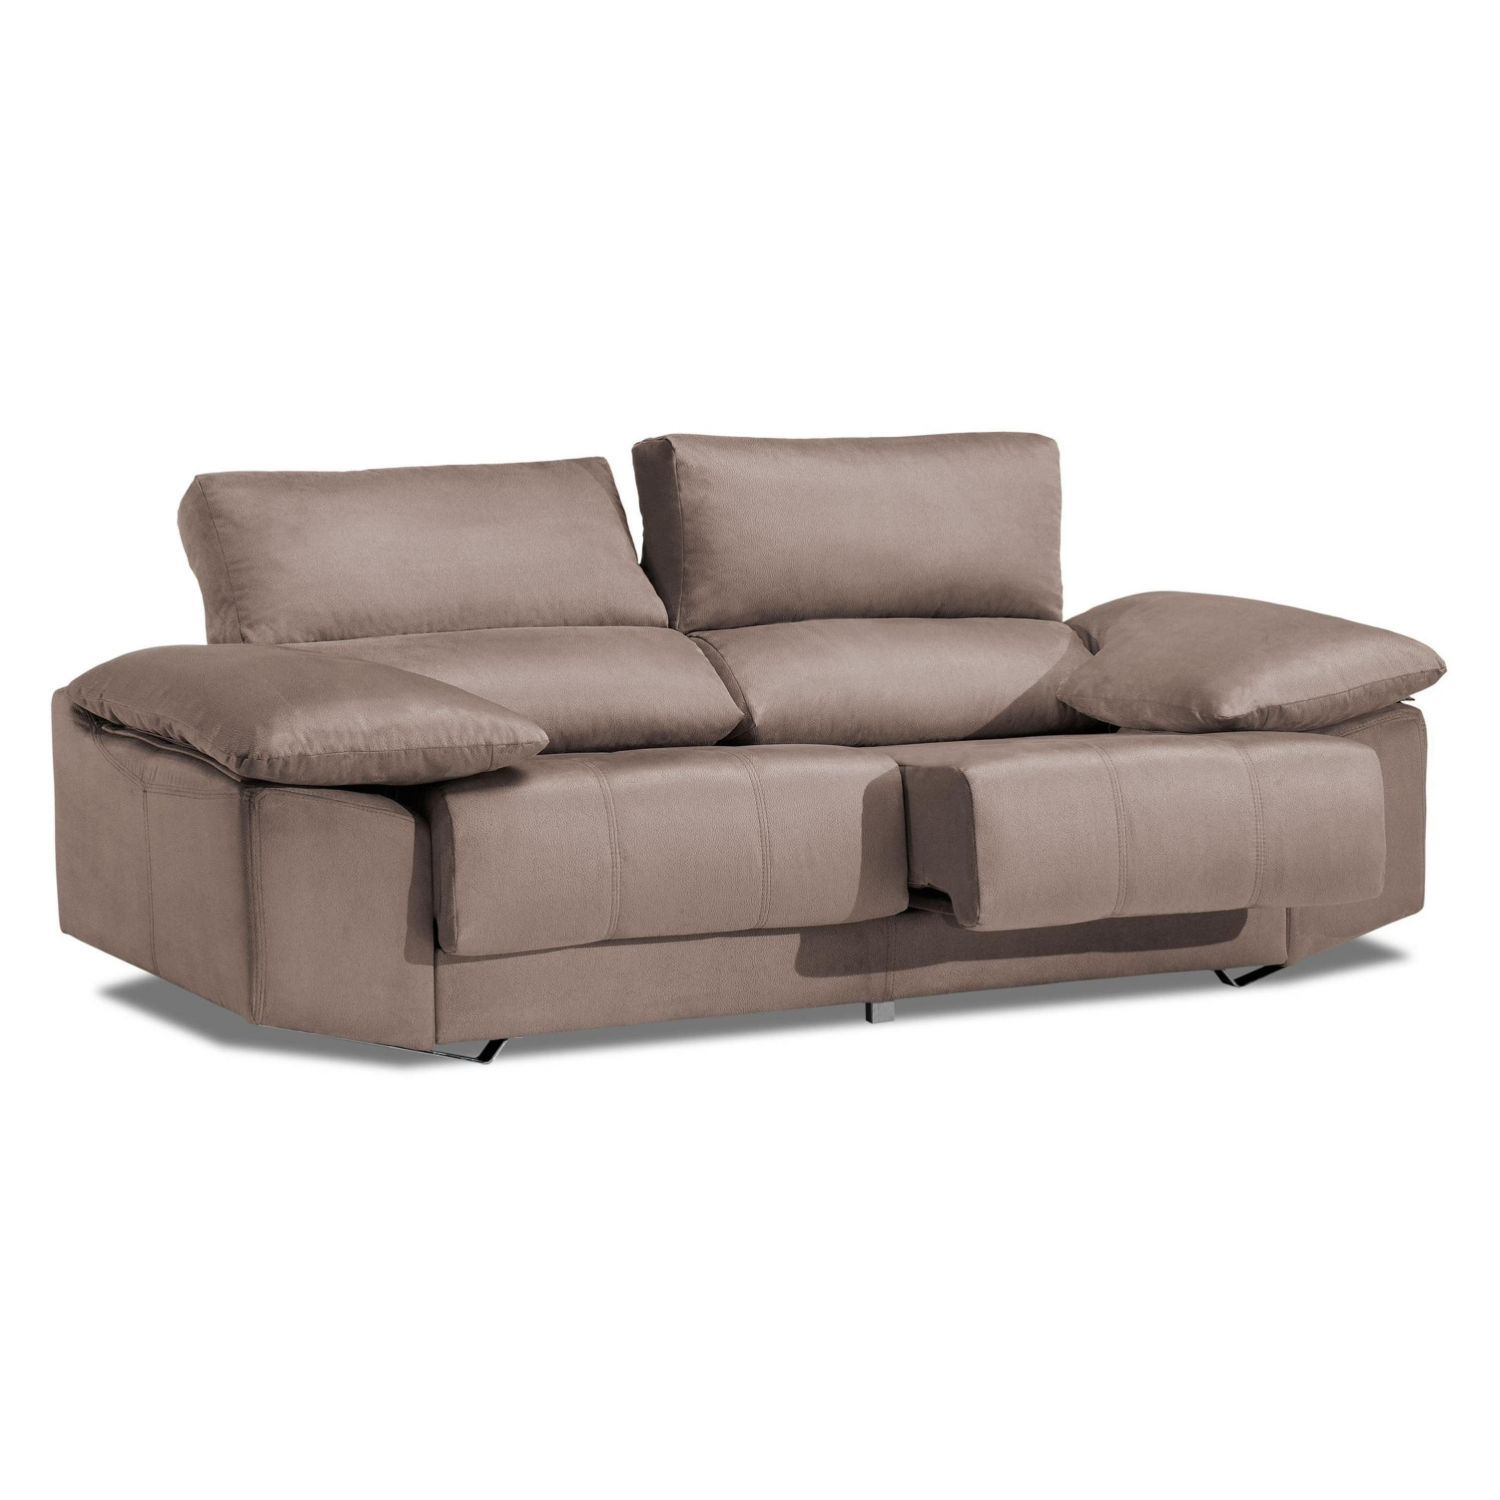 Sofá alta gama beige 3 plazas reclinable y extensible, antimanchas 215 cm